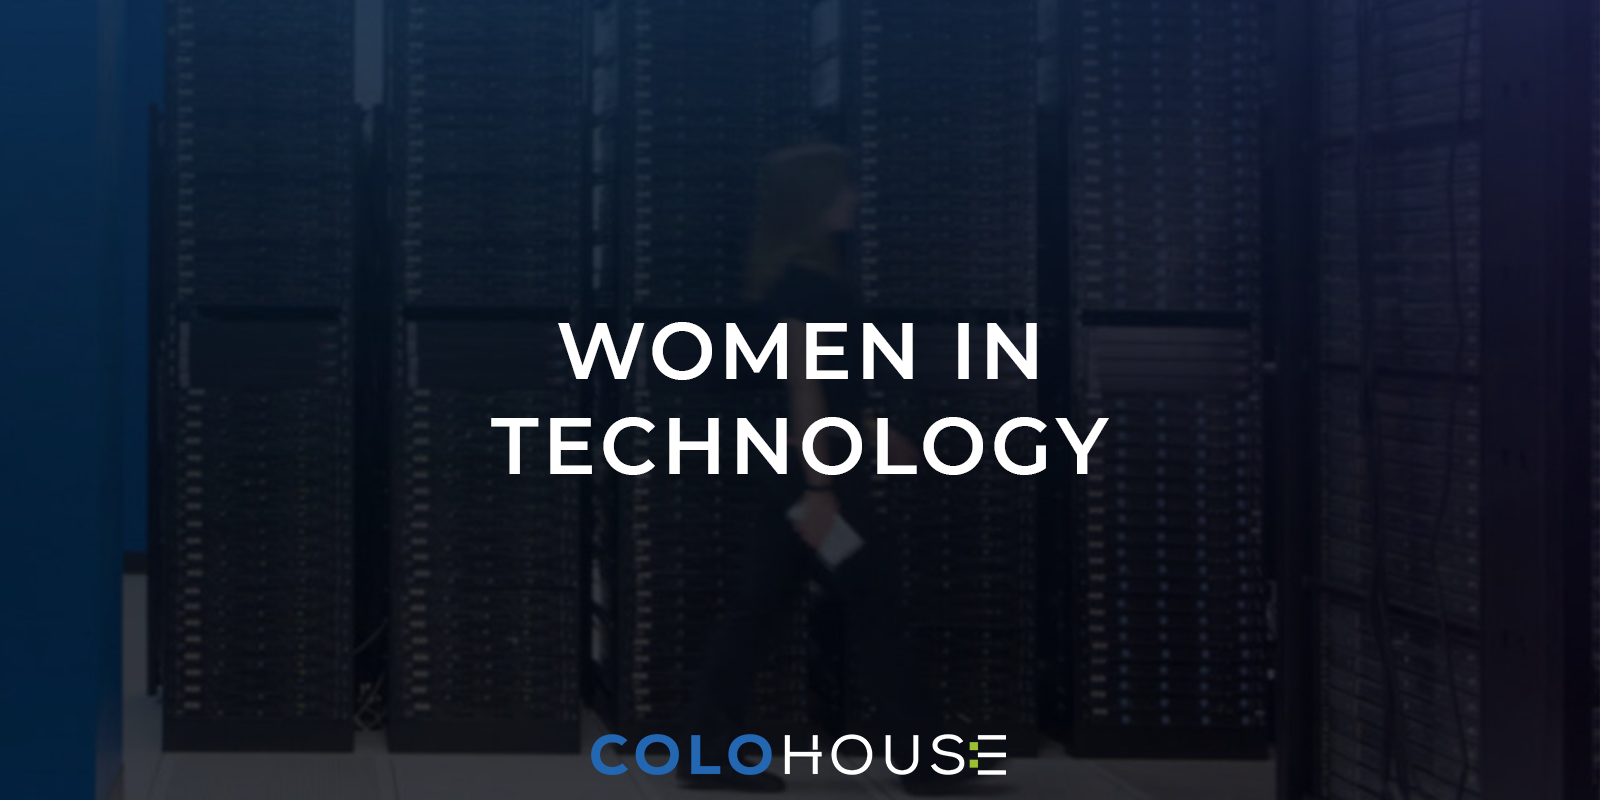 blog title: women in technology